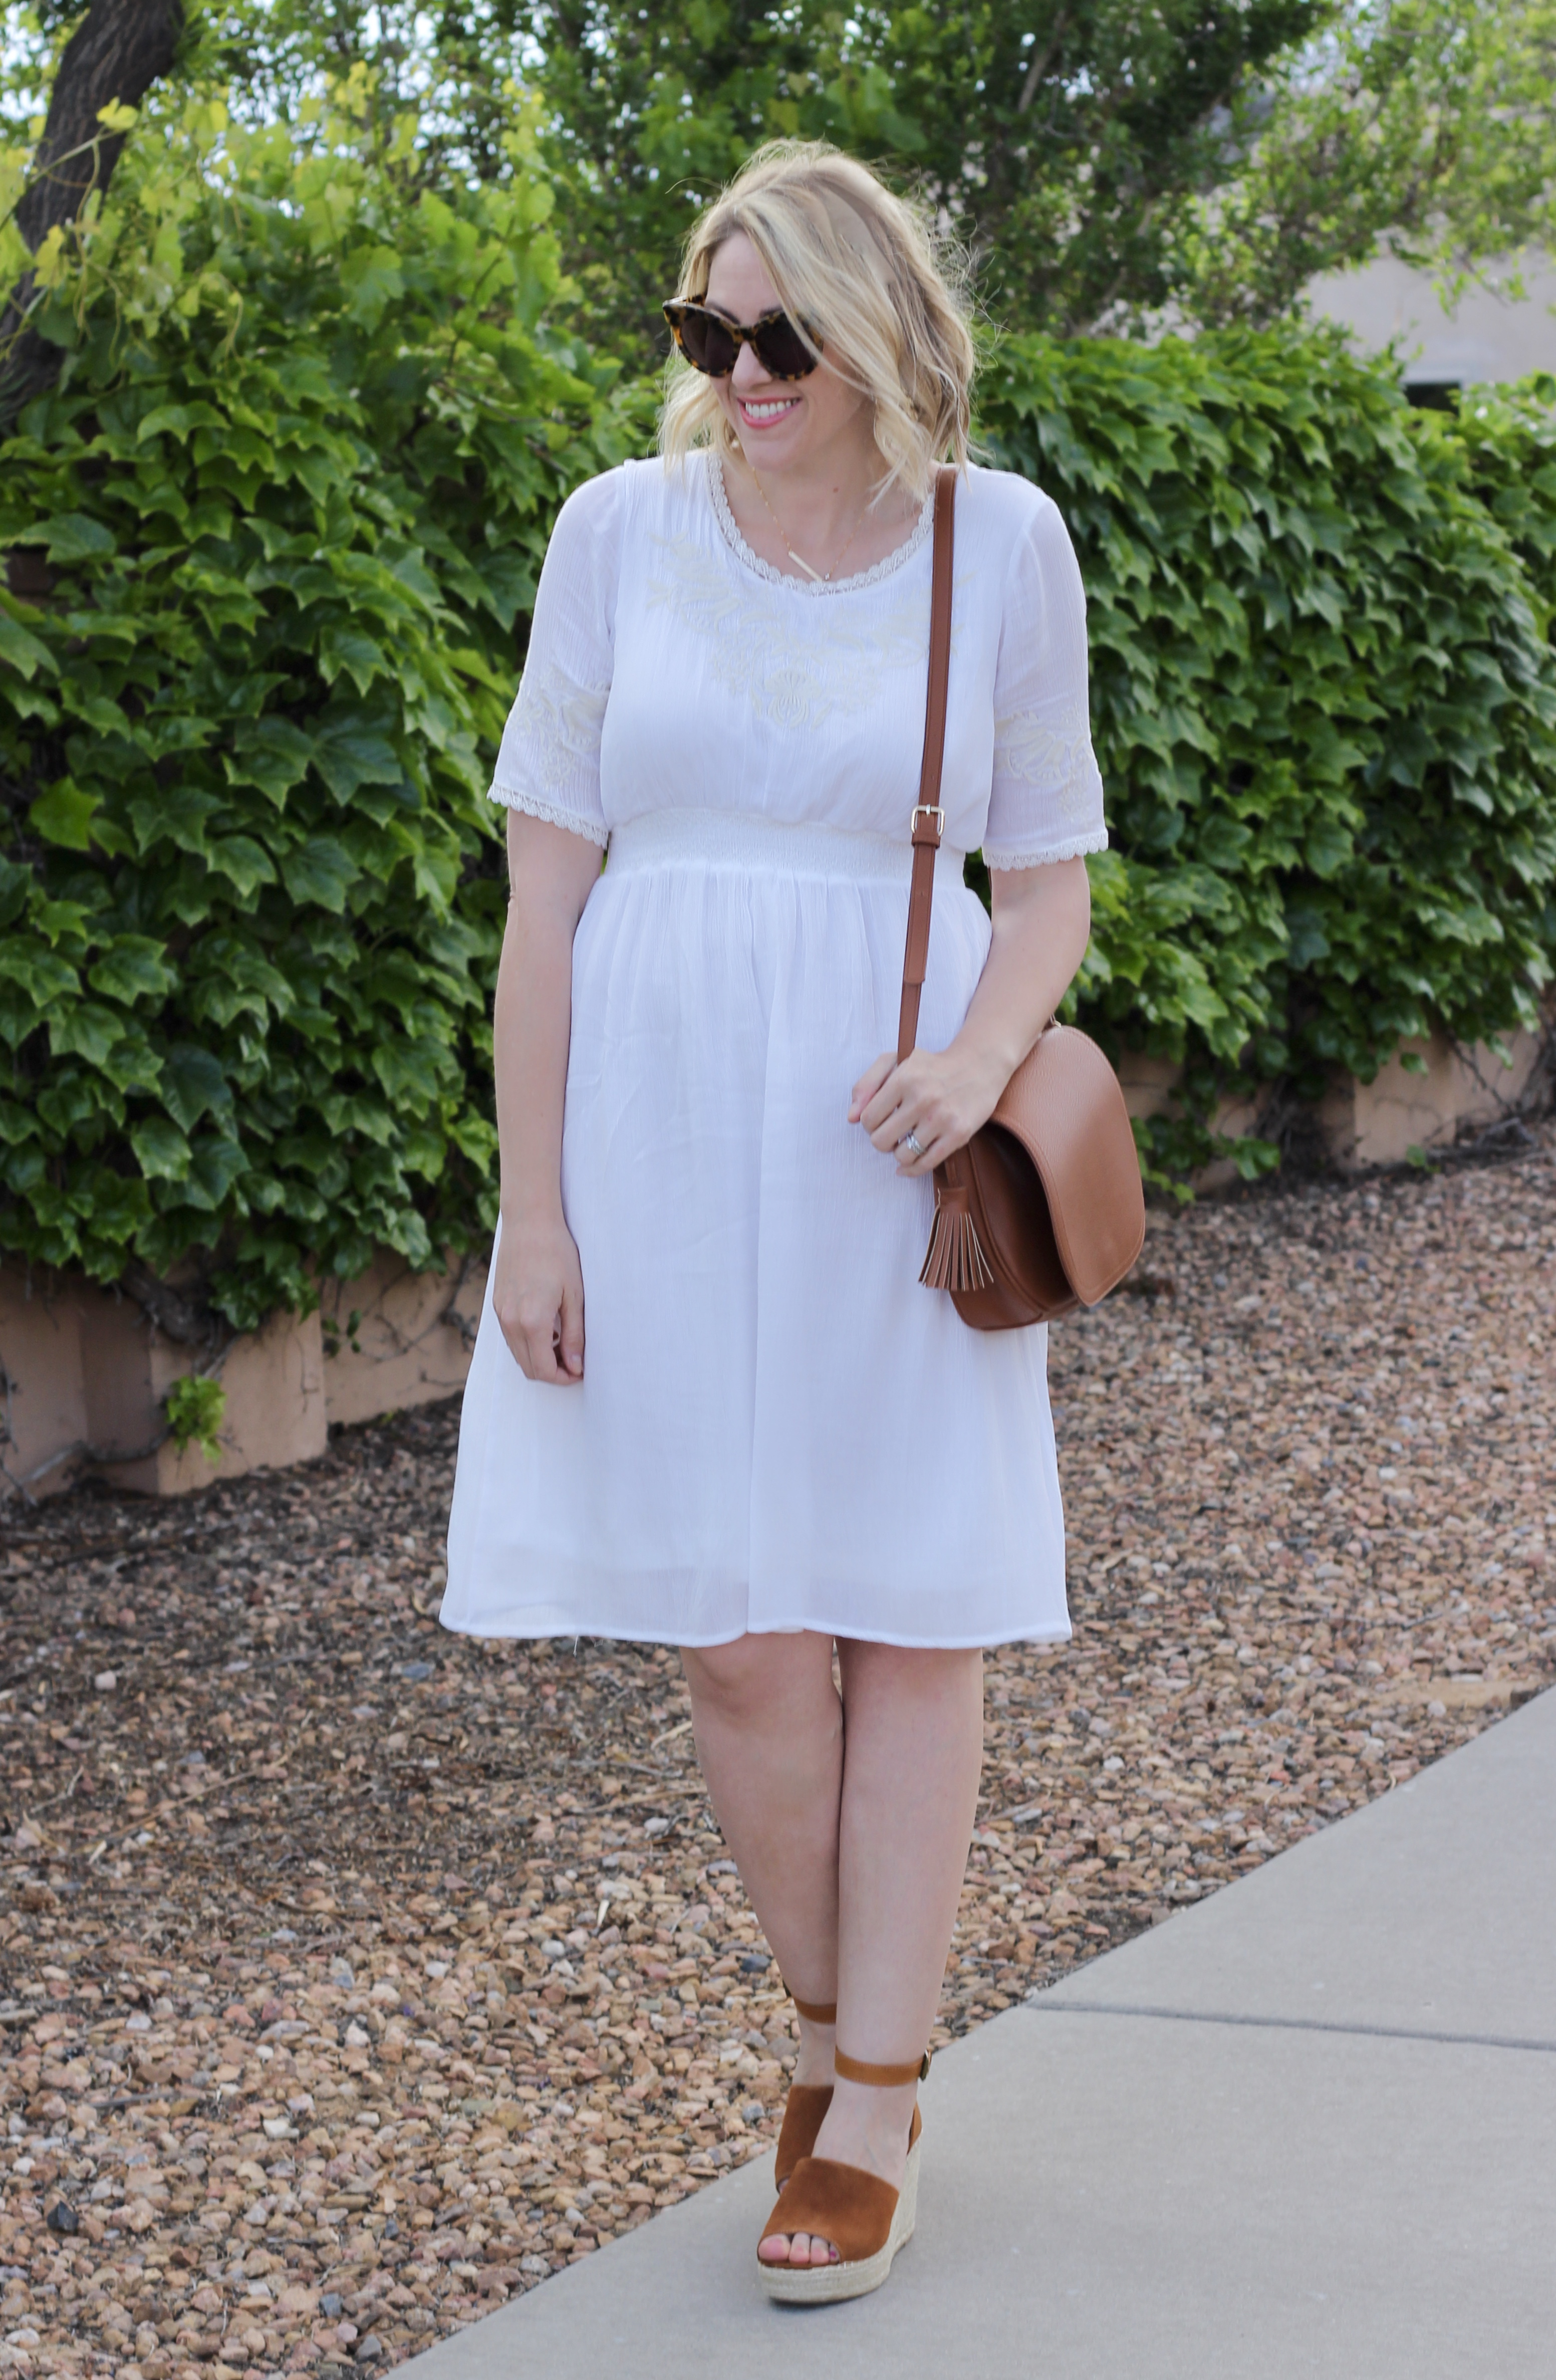 white dress outfit for spring